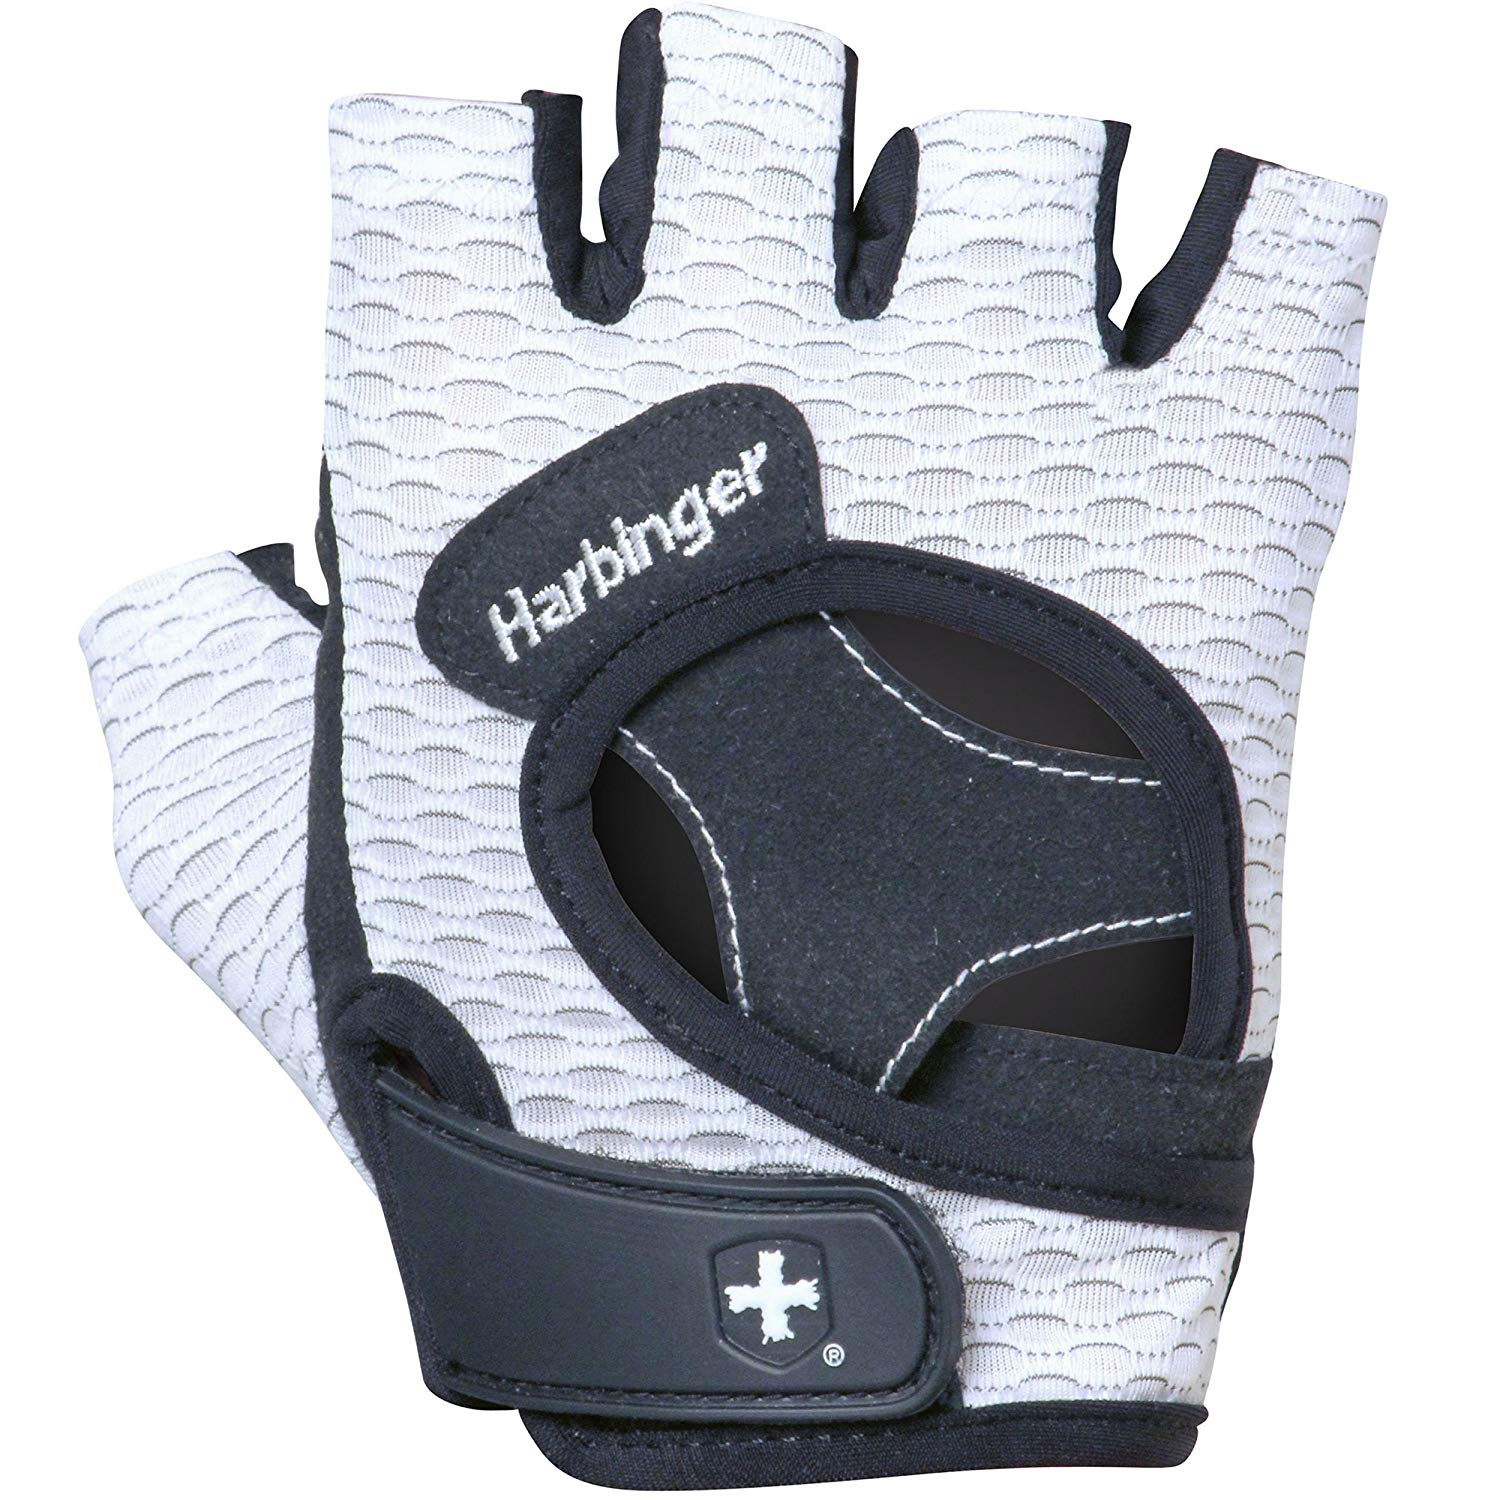 Harbinger Woman Weight Lifting Gloves